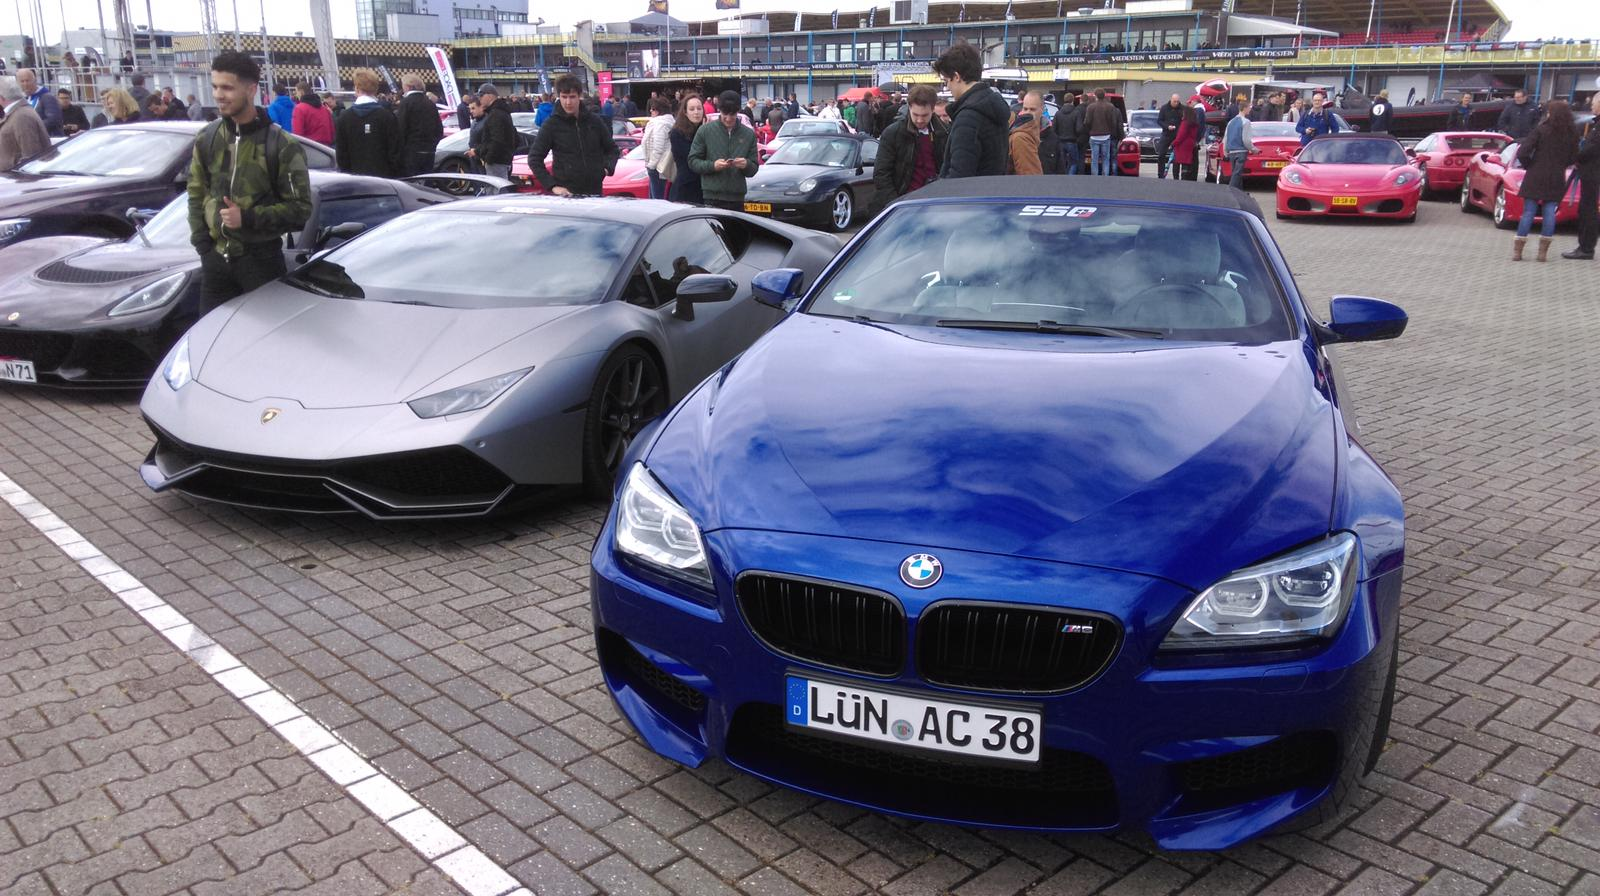 Lamborghini Huracan and BMW M6